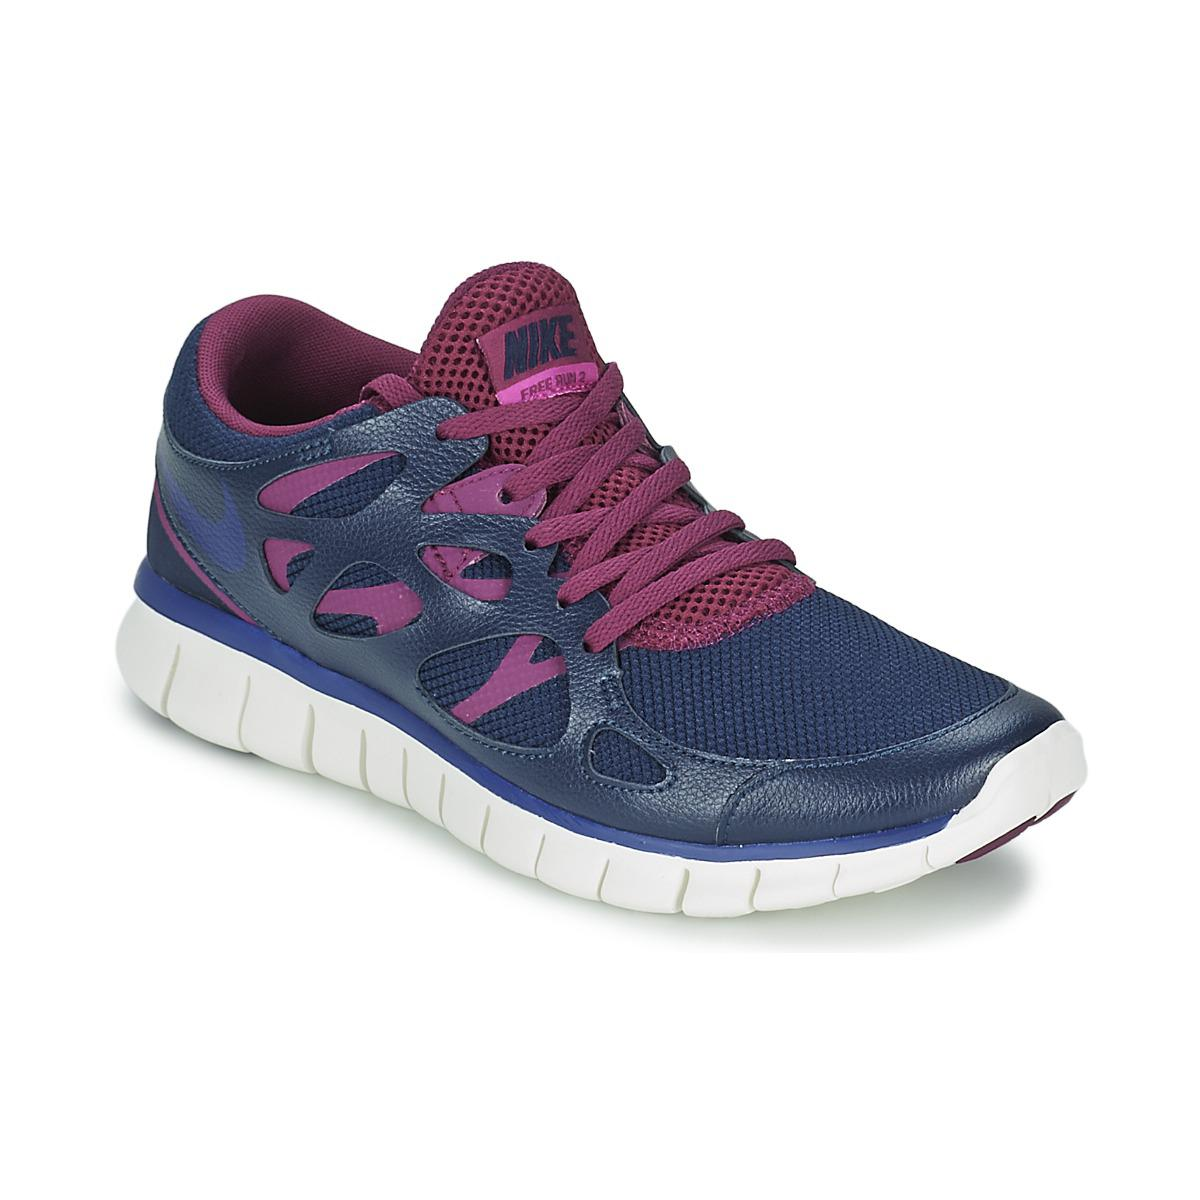 ee4da77b9ccc8 Nike Free Run 2 Ext Women s Shoes (trainers) In Blue in Blue - Lyst